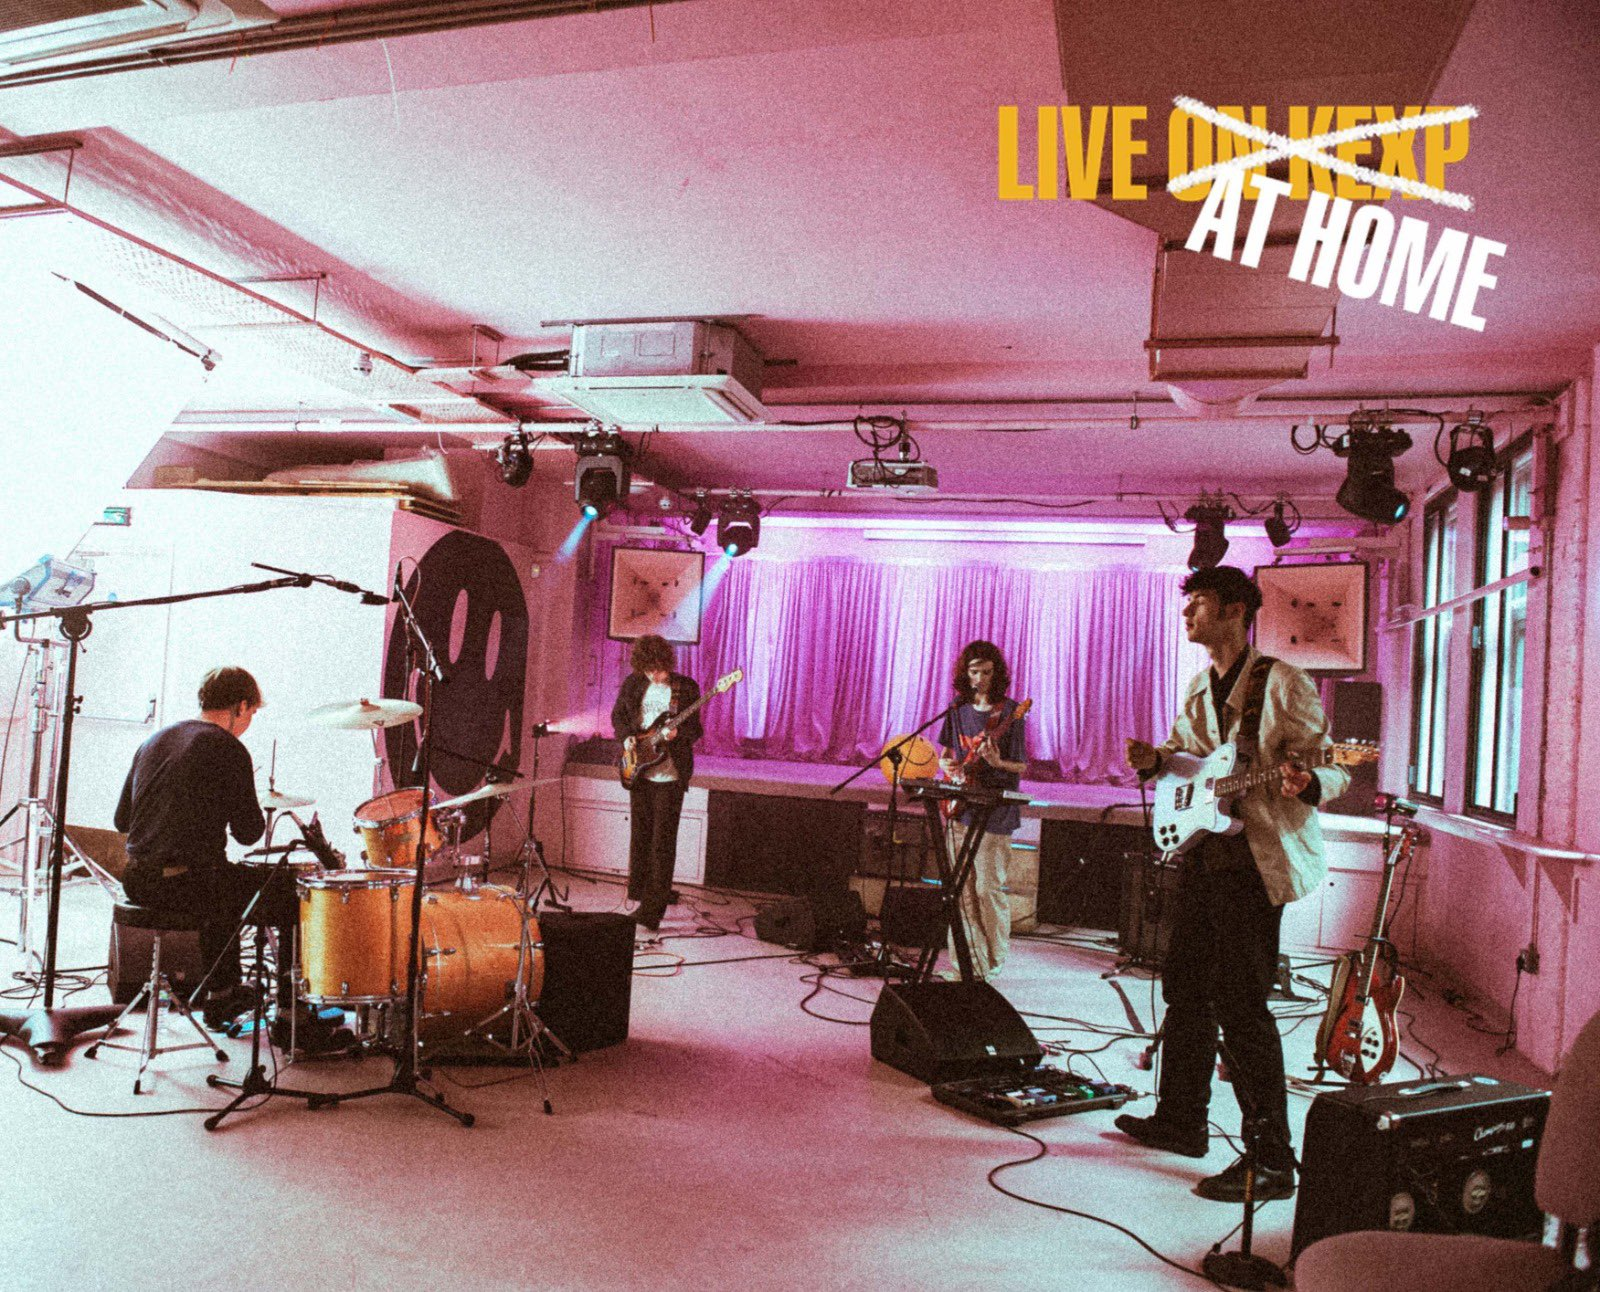 Le Live de la semaine – The Lounge Society – Full Performance (Live on KEXP at Home)